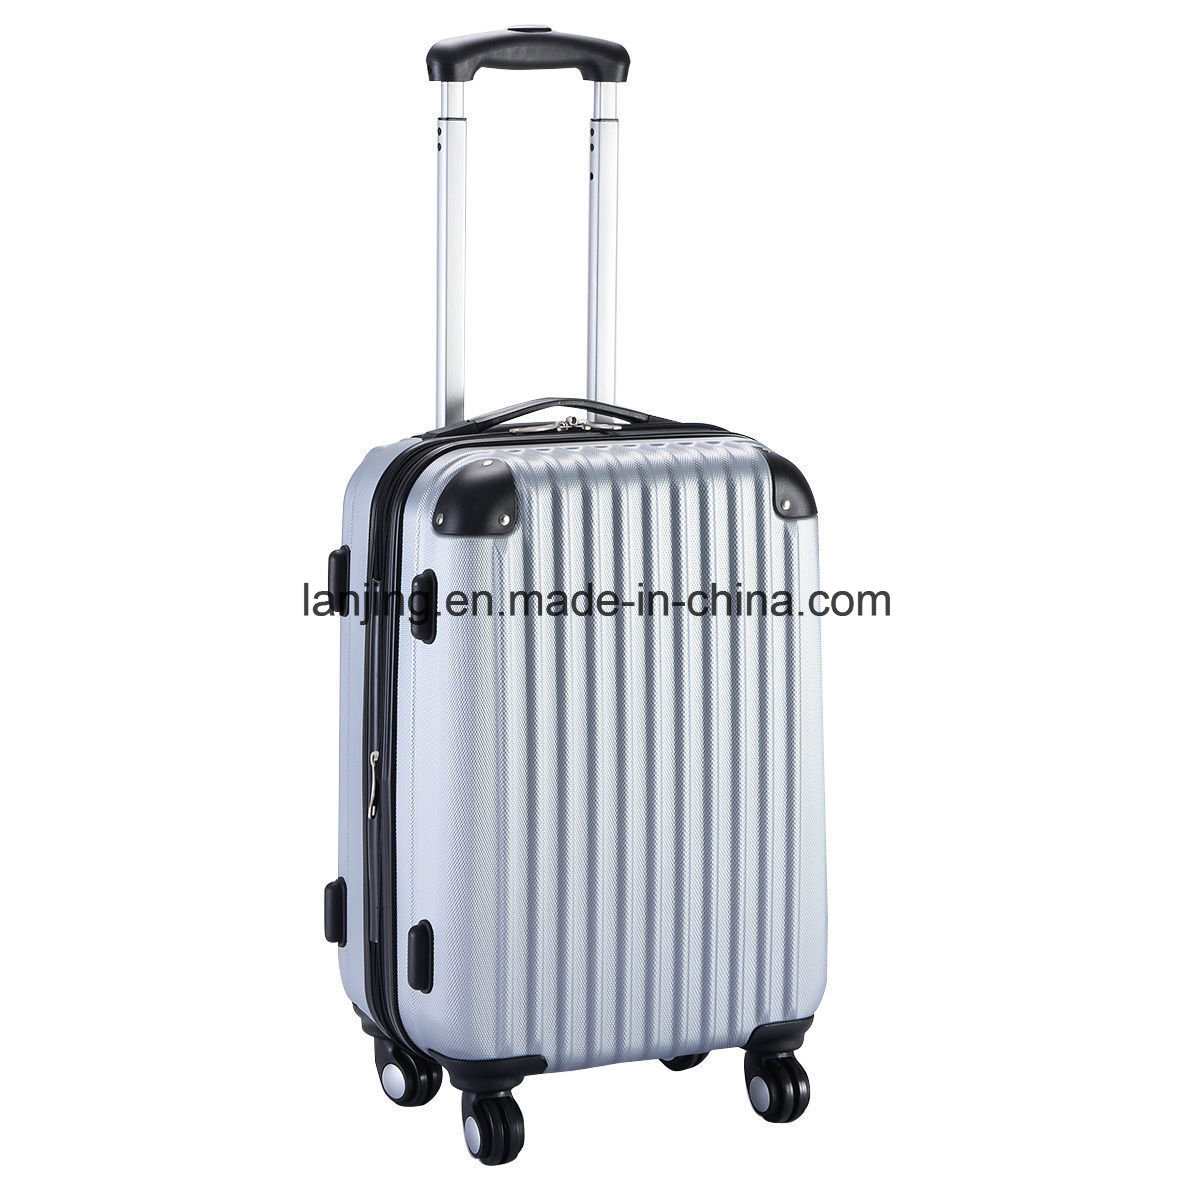 Bw246 2017 Hot Wheeled Trolley Cases PP Luggage